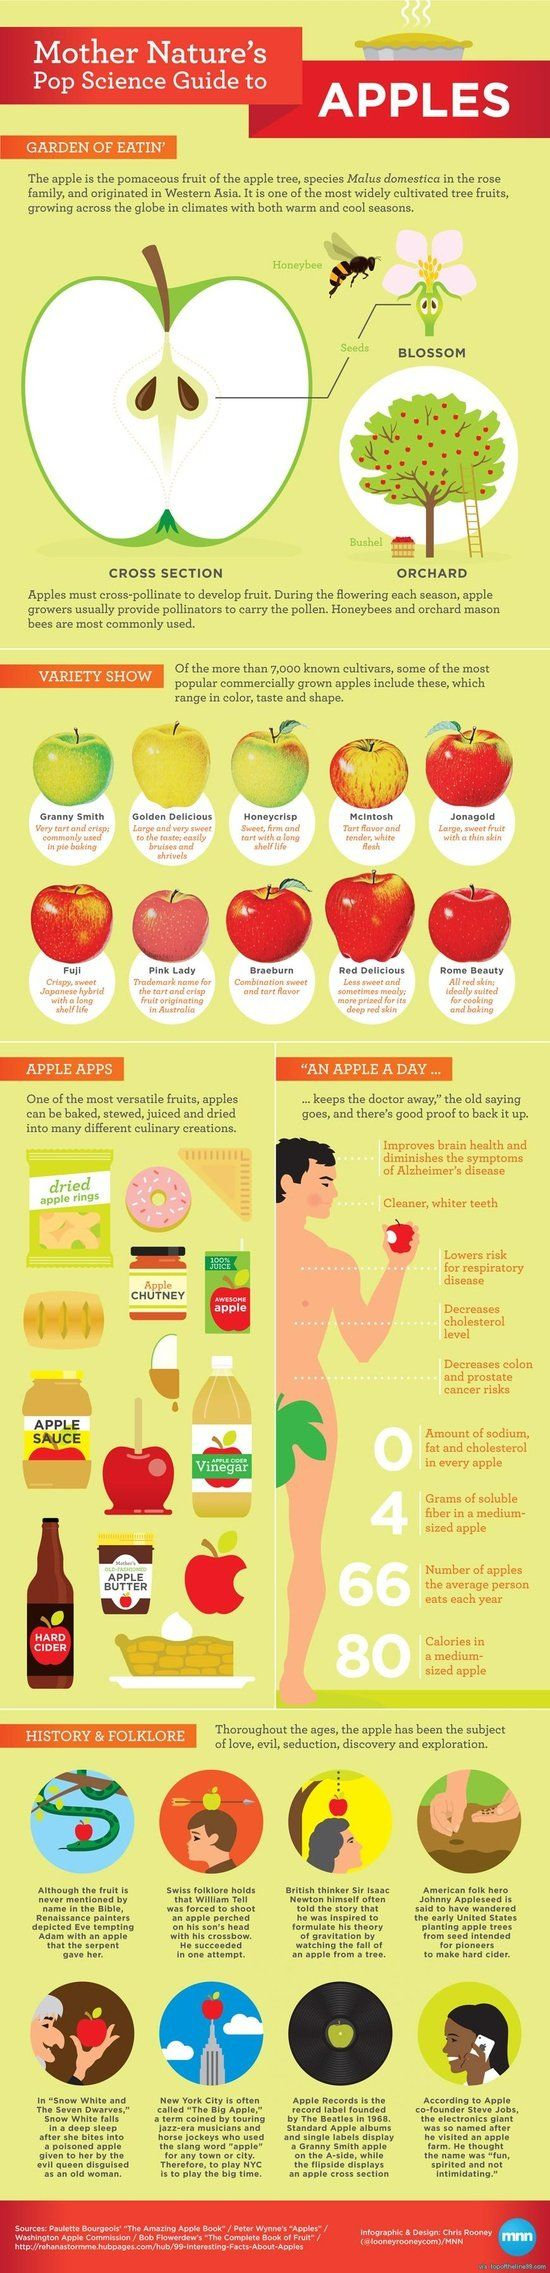 Apples are an excellent snack for curbing appetite